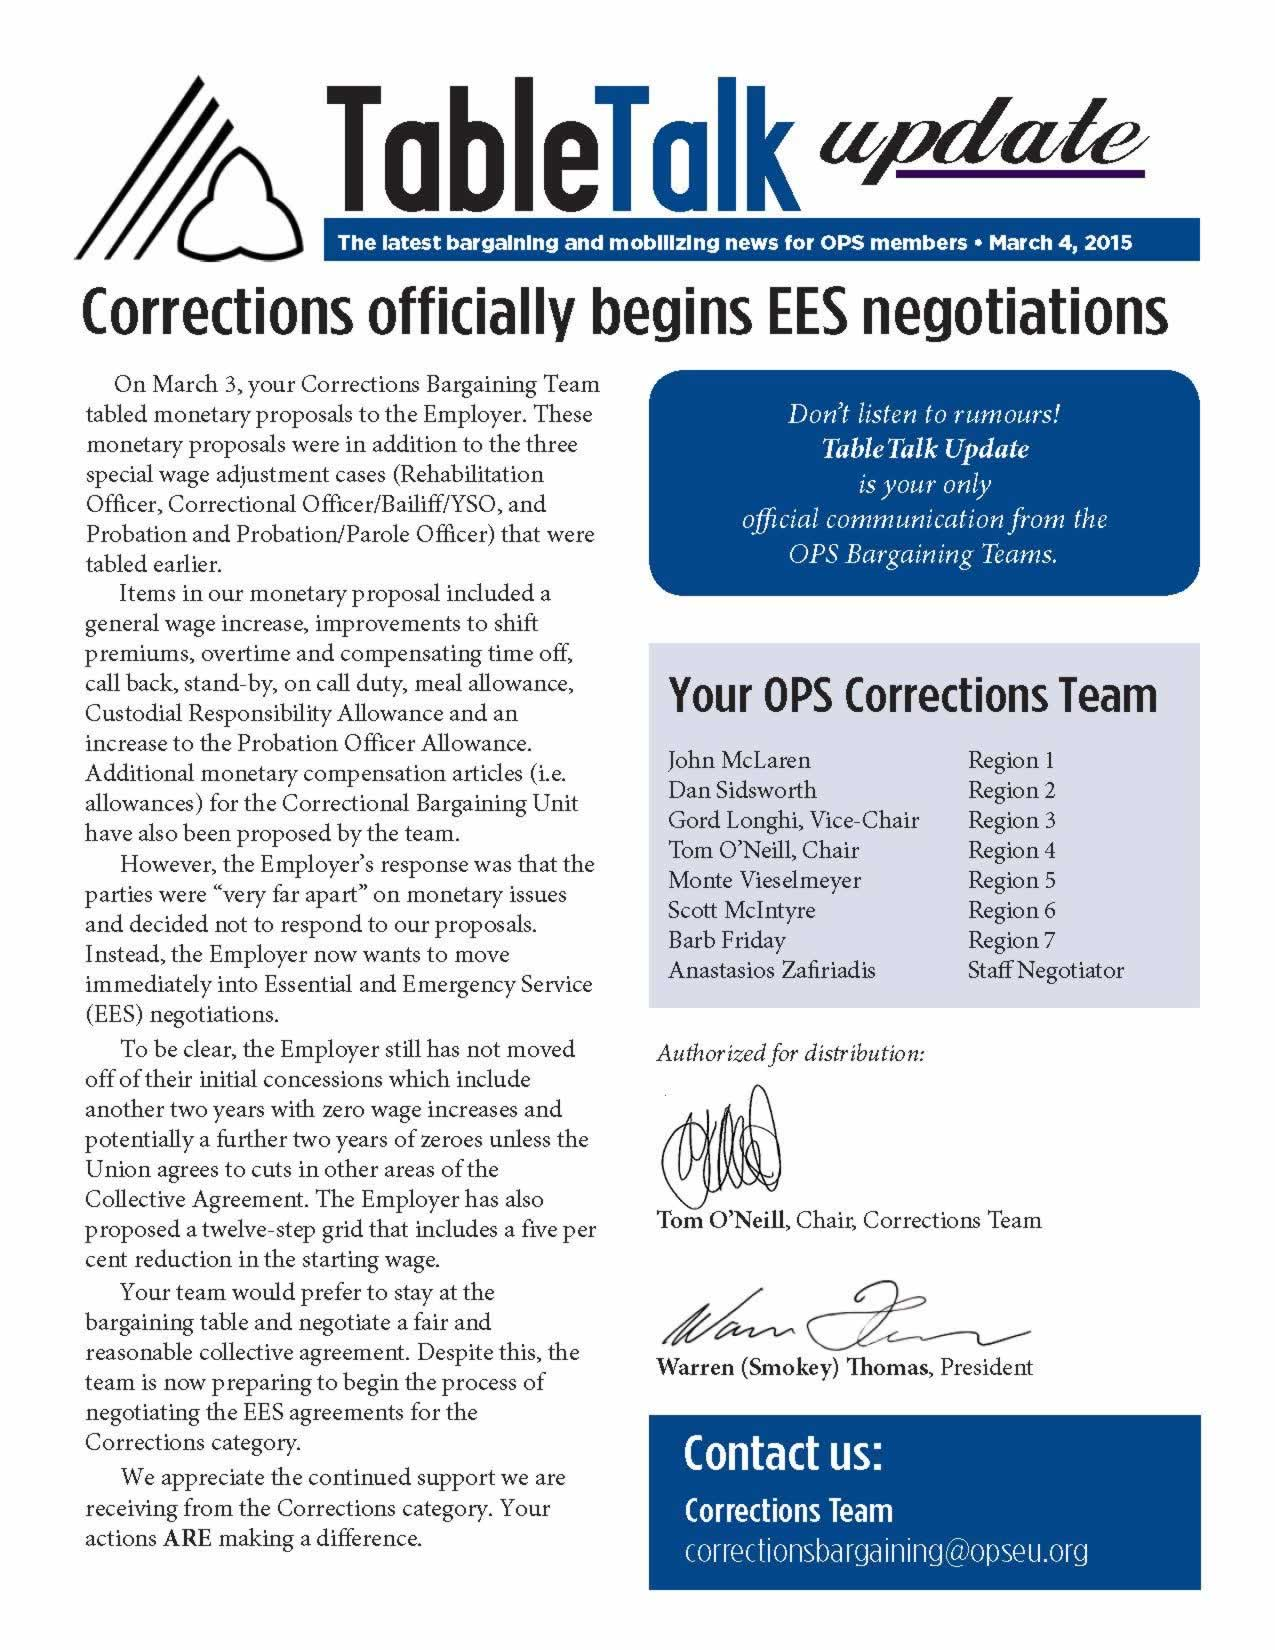 Table Talk Update: Corrections officially begins EES negotiations